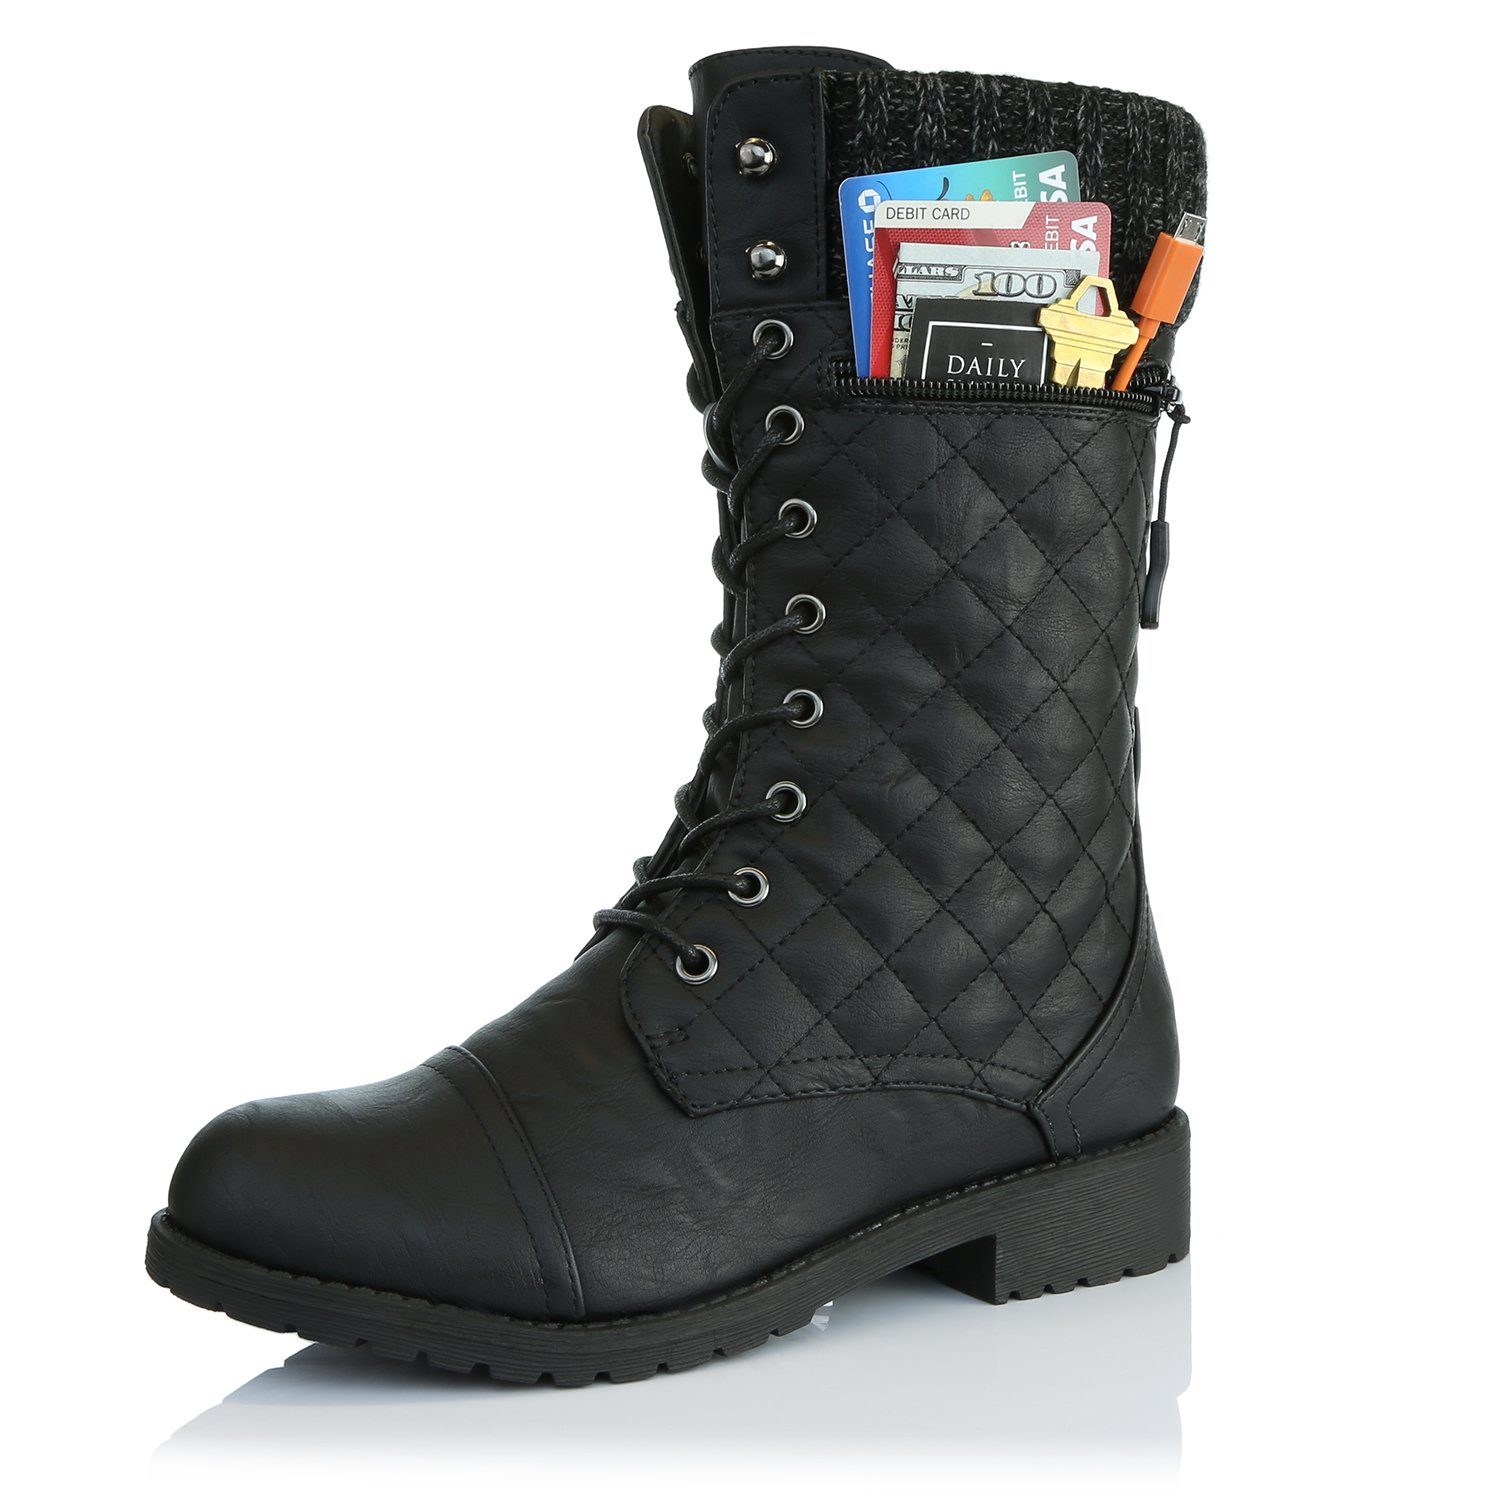 DailyShoes Women's Combat Style Lace up Ankle Bootie Quilted Military Knit Credit Card Knife Money Wallet Pocket Boots, Black Pu, 9